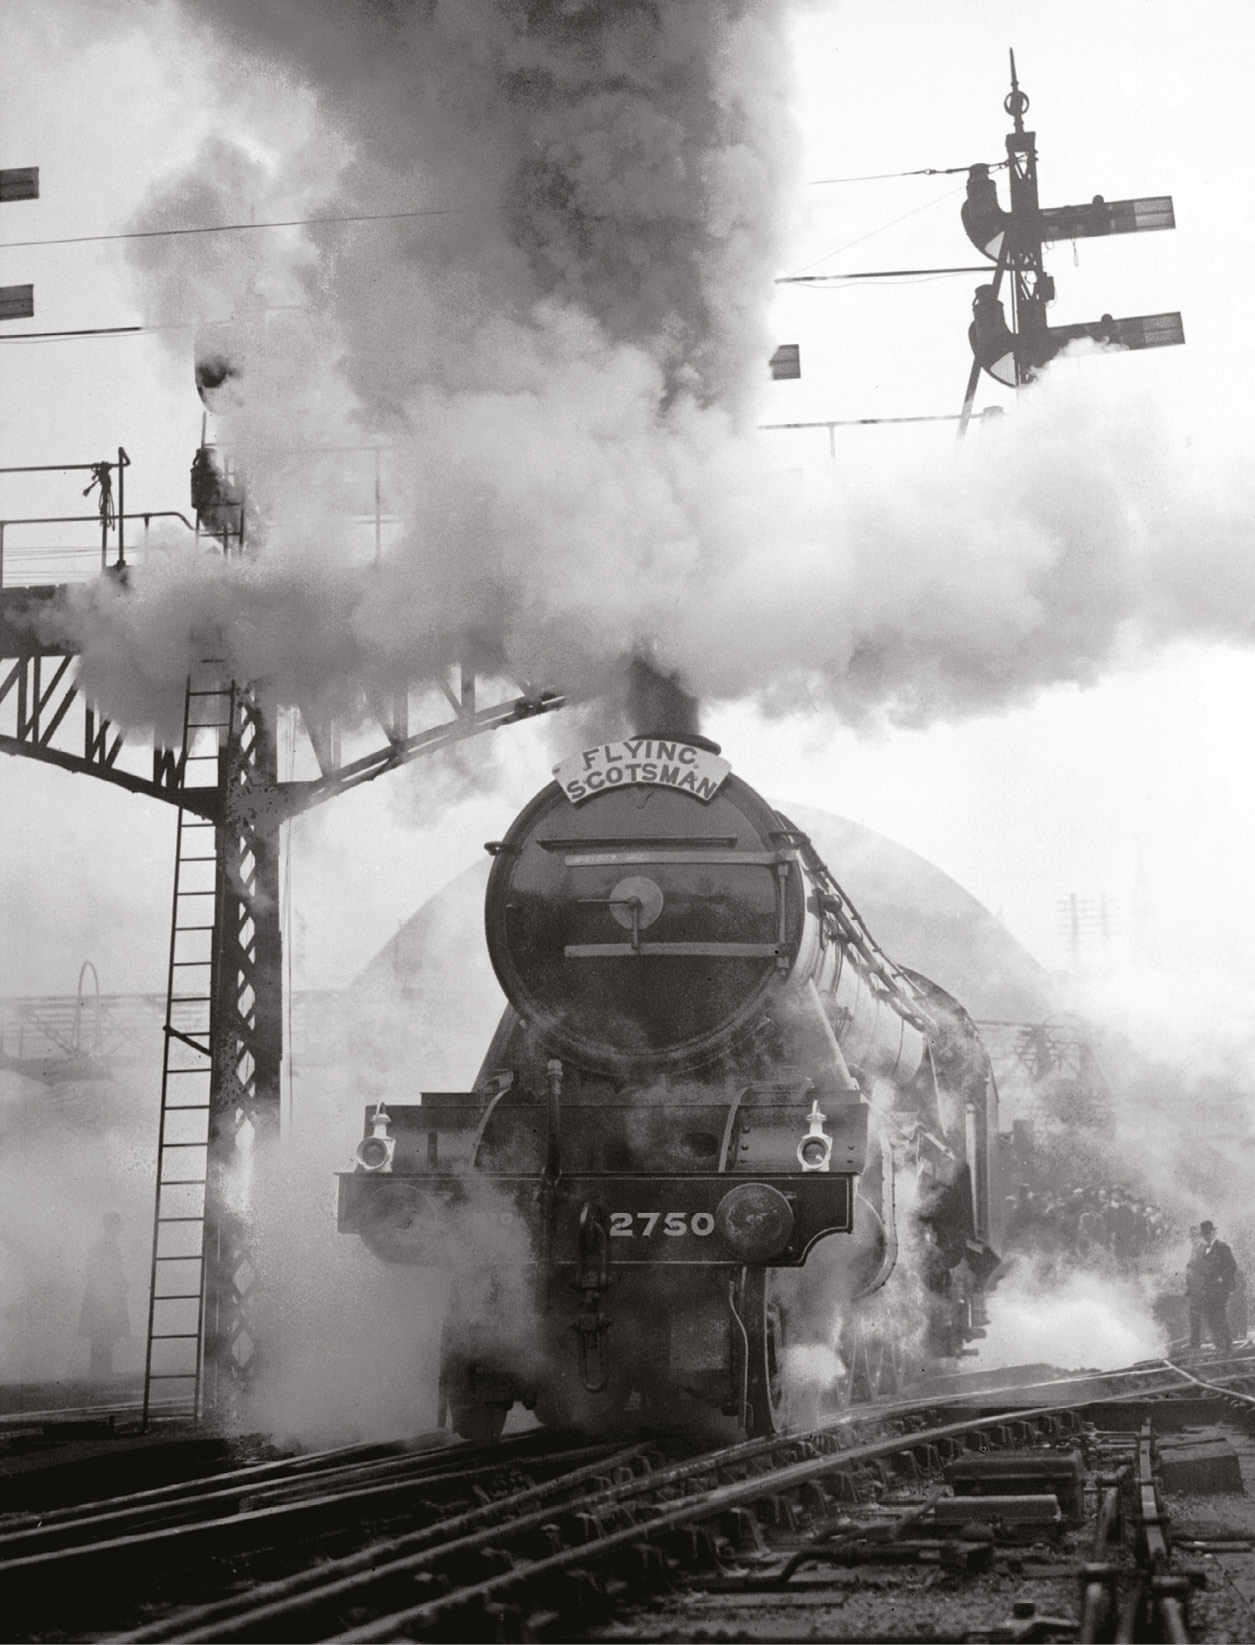 The Flying Scotsman could soon be banned from main railways